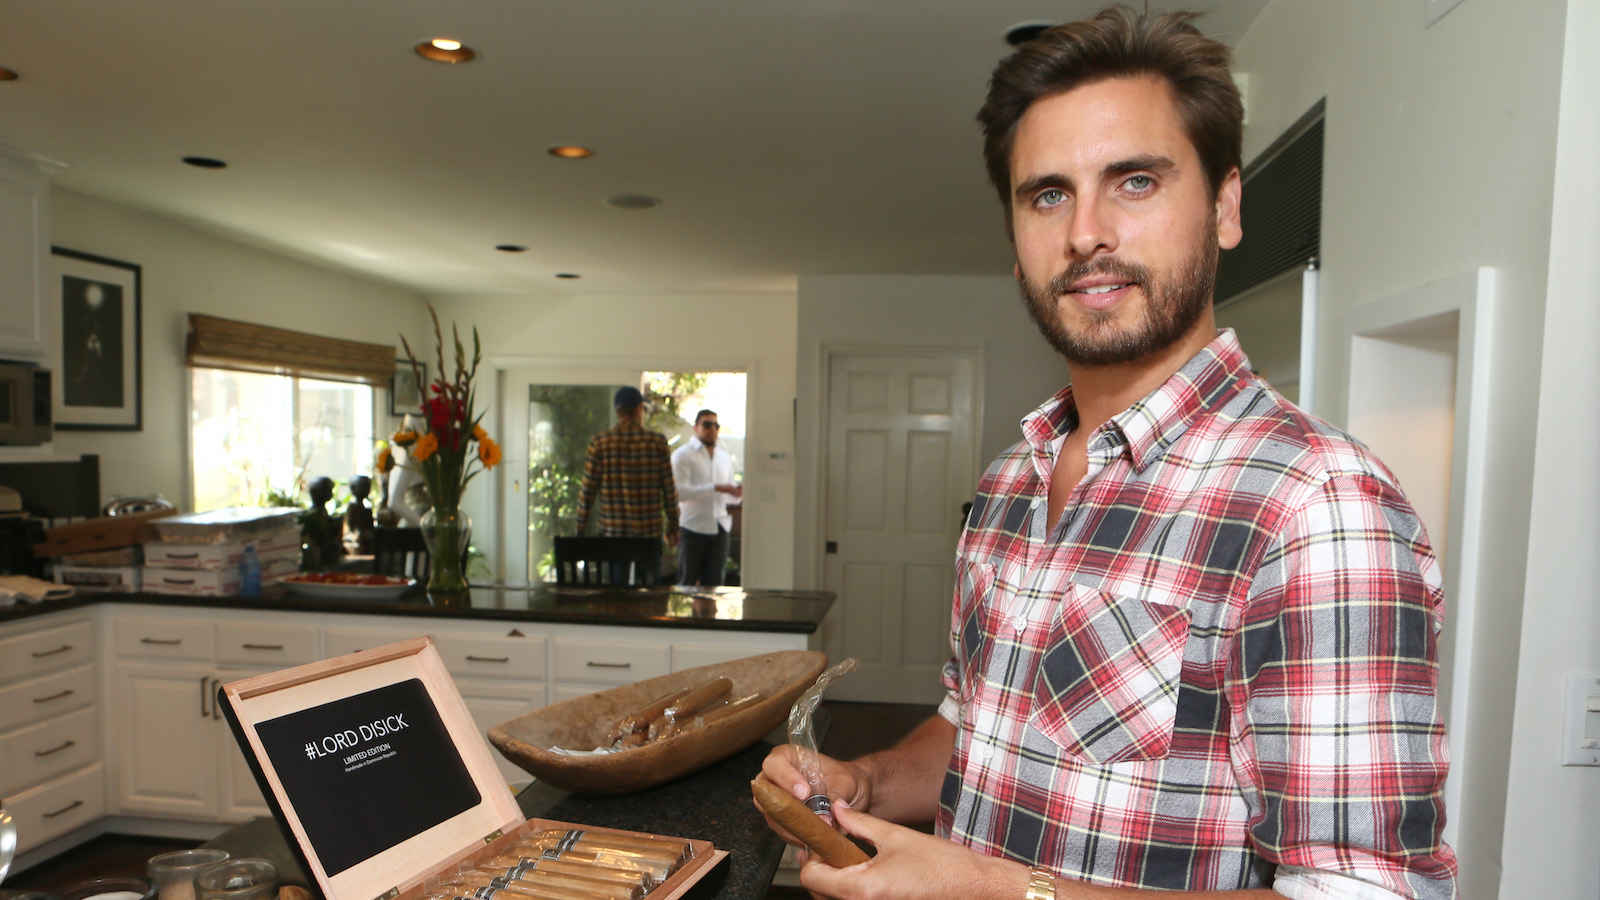 Host Scott Disick at Zindigo Takes Malibu on Monday, August 12, 2013 in Malibu, CA. (Photo by Alexandra Wyman/Invision for Talent Resources/AP Images)